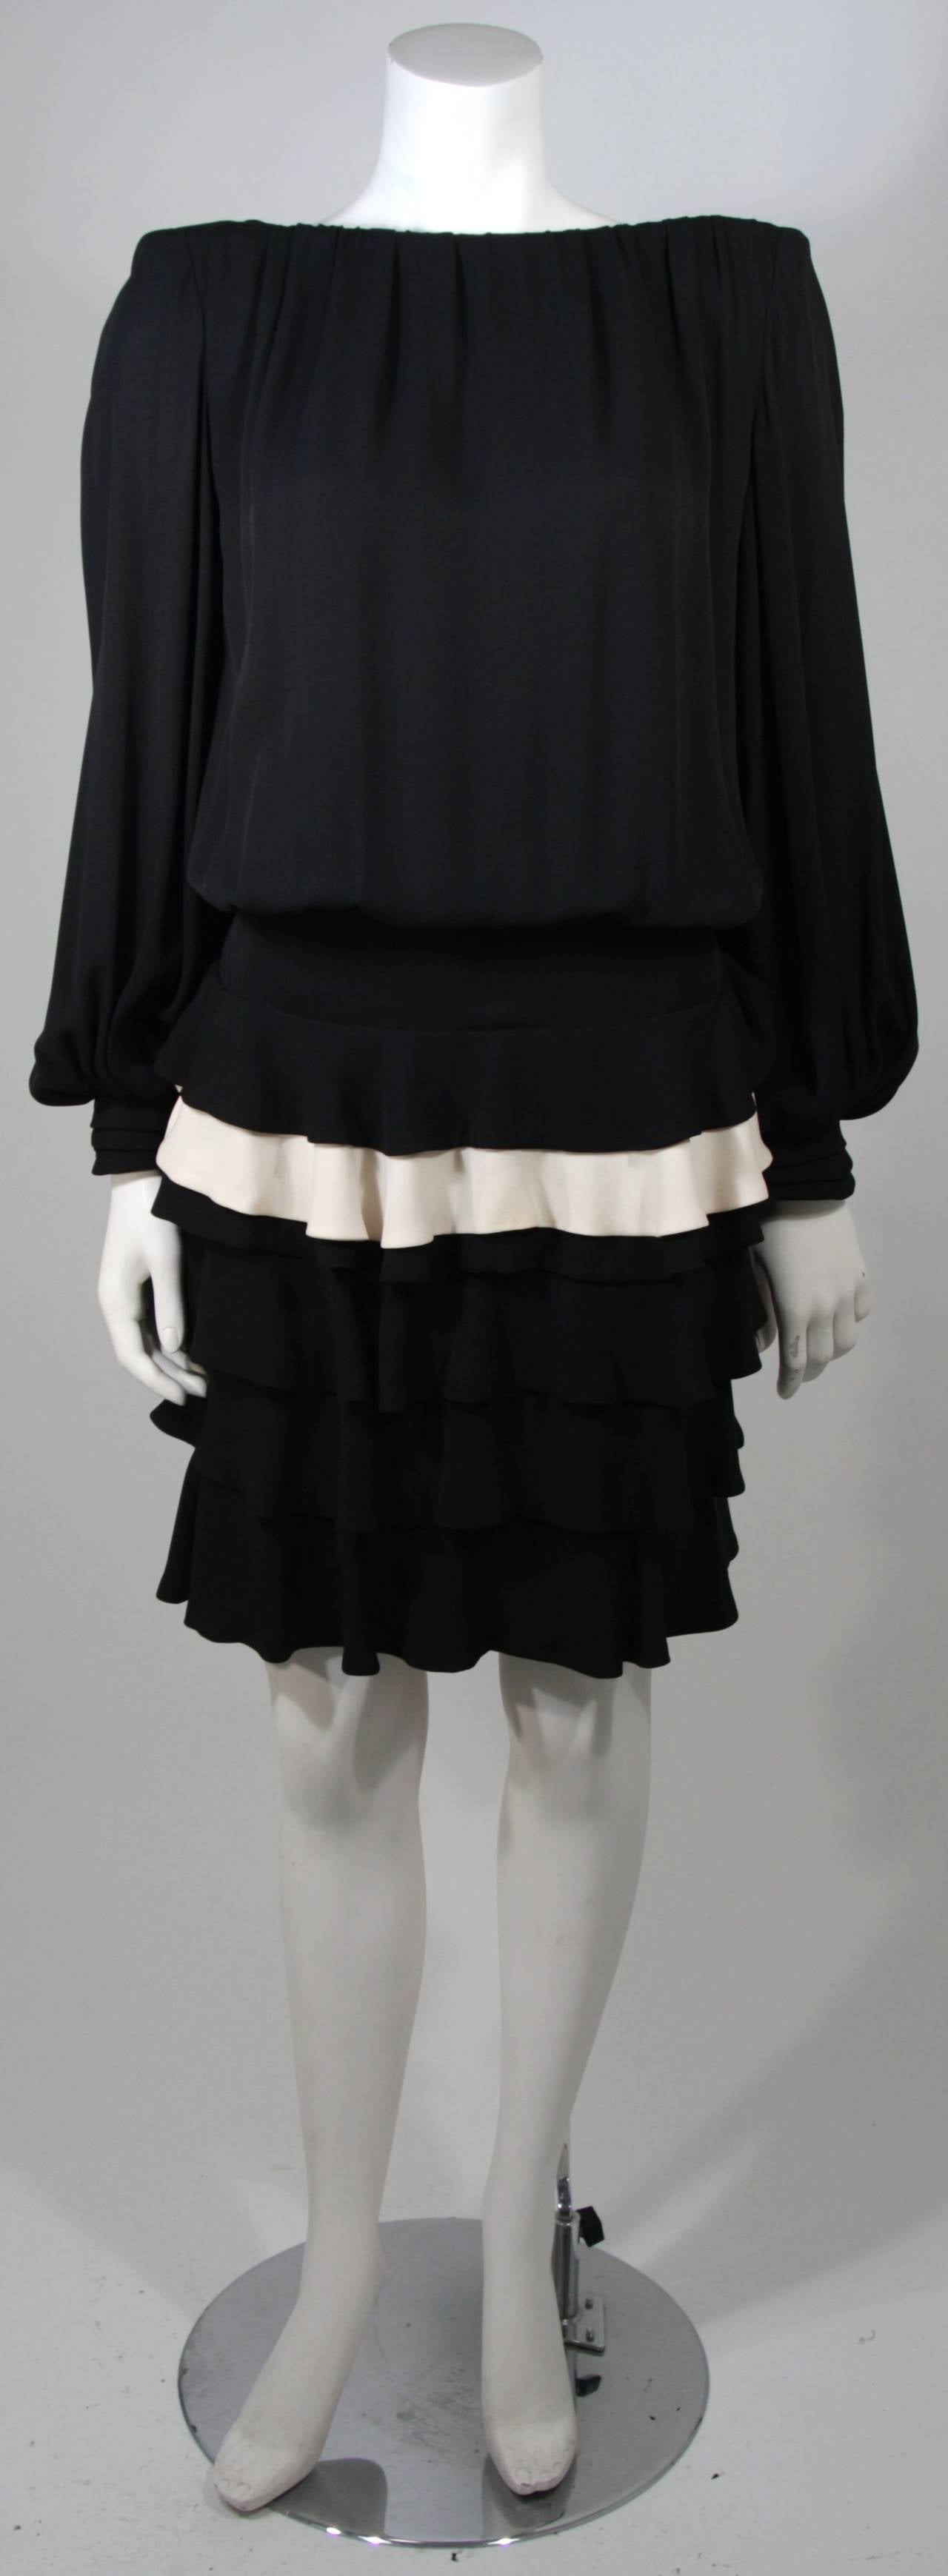 Galanos Black and Cream Ruffled Cocktail Dress with Dramatic Neckline Size 2 2